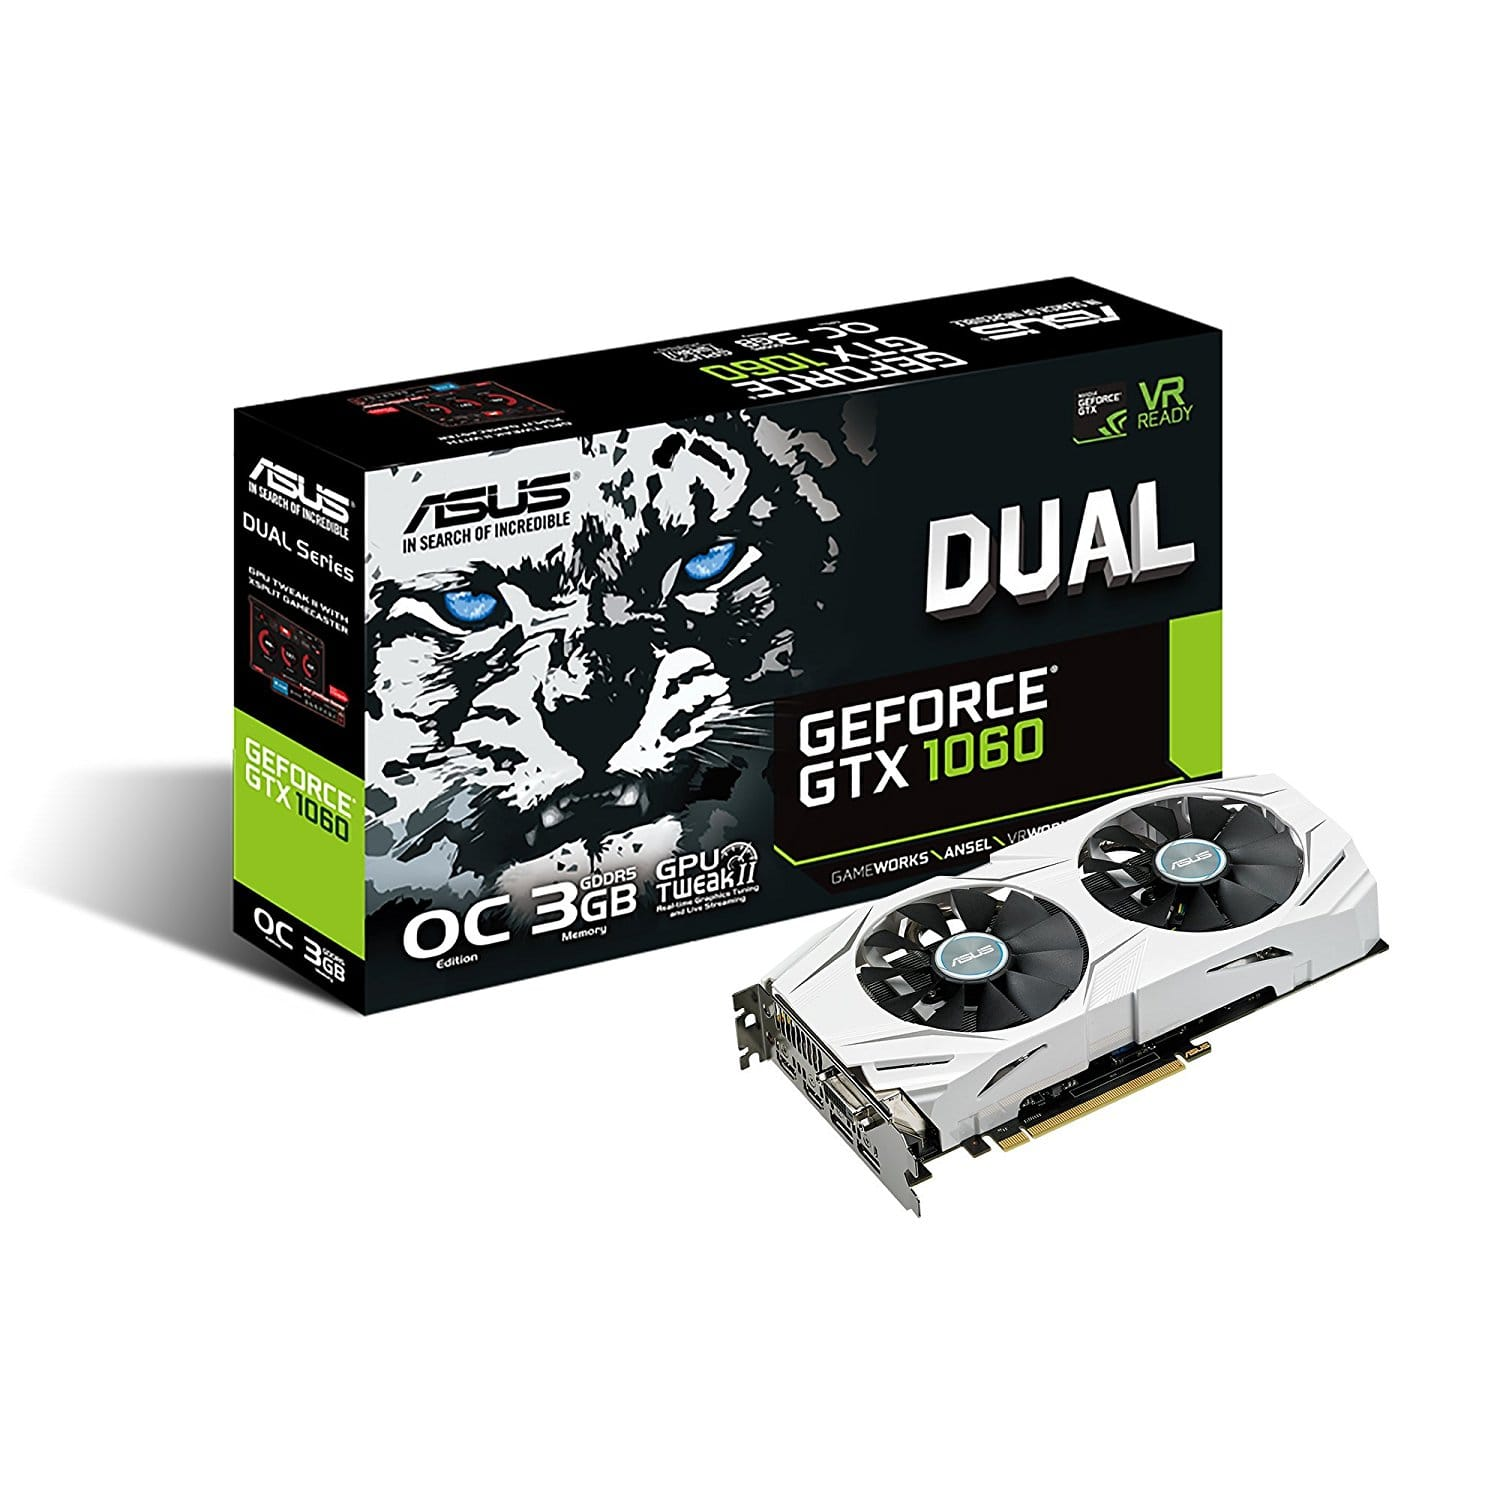 ASUS GeForce GTX 1060 3GB Dual-Fan OC Edition Graphics Card $207.99 with 20 rebate $187.99